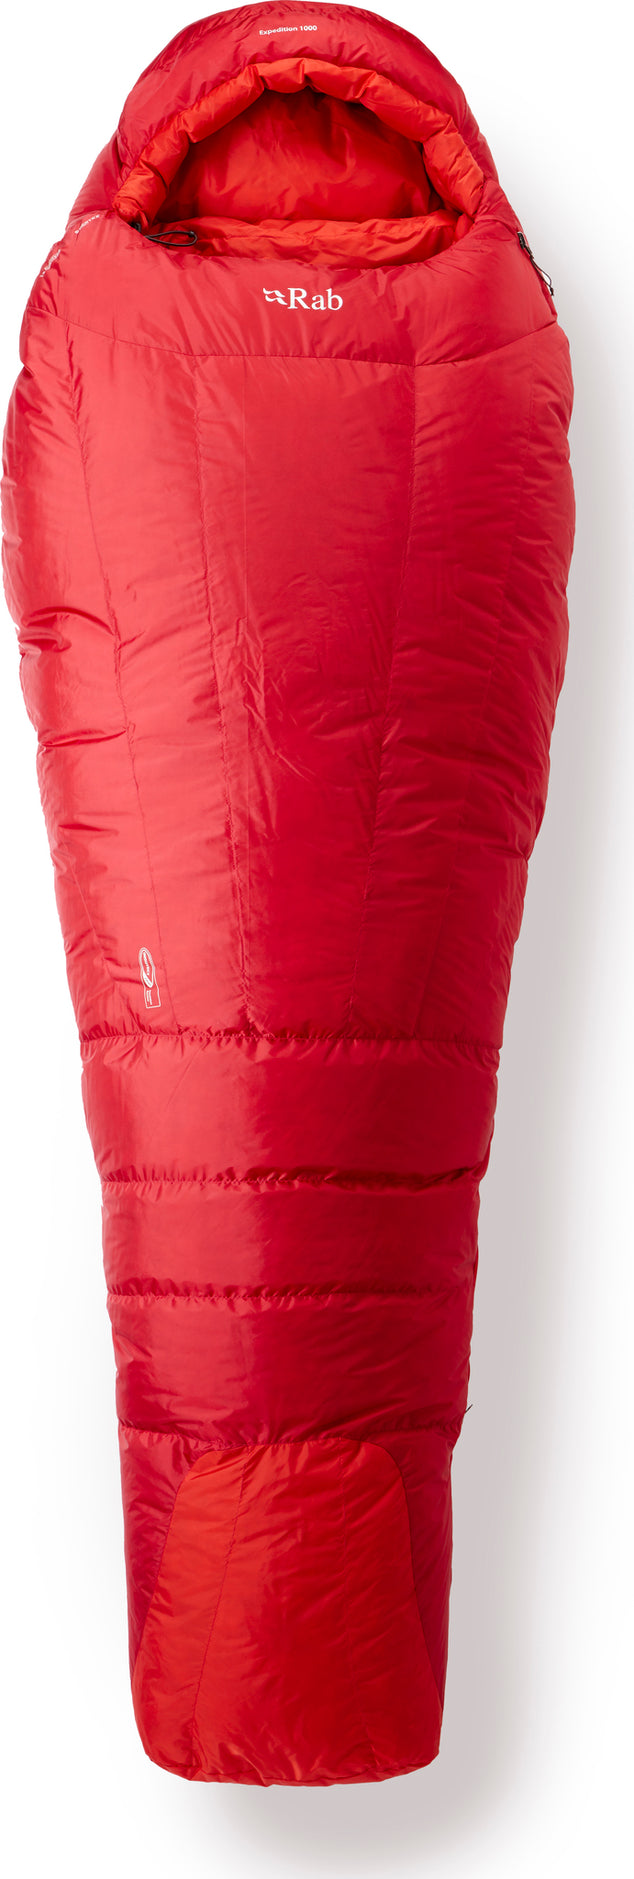 Rab Expedition 1000 Down Sleeping Bag